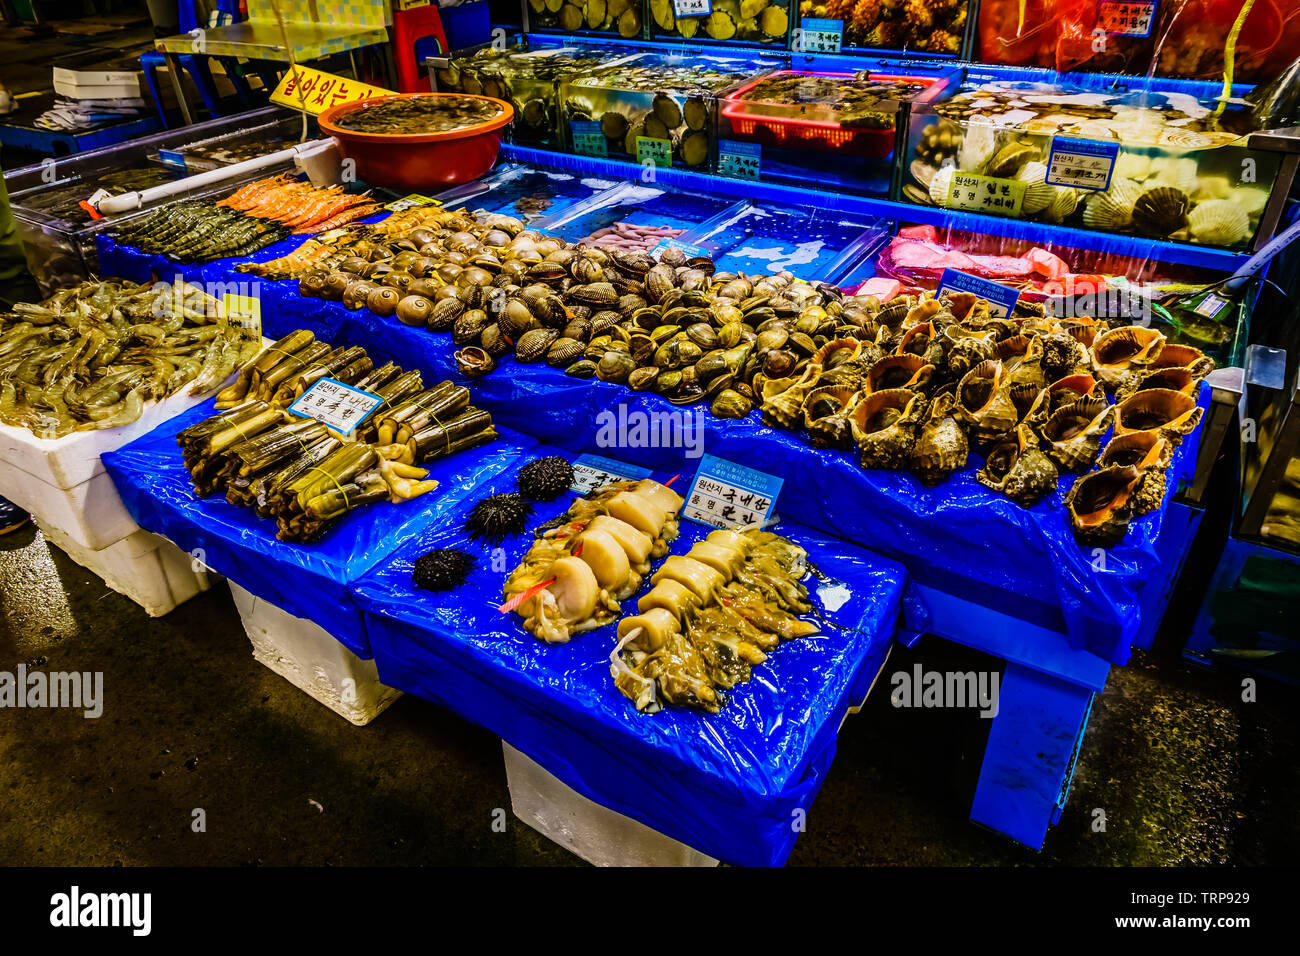 Seoul, South Korea - May 17, 2017:   Noryangjin Fish Market, the largest and oldest fish market in Korea, located in the Noryangjin-dong neighborhood. - Stock Image